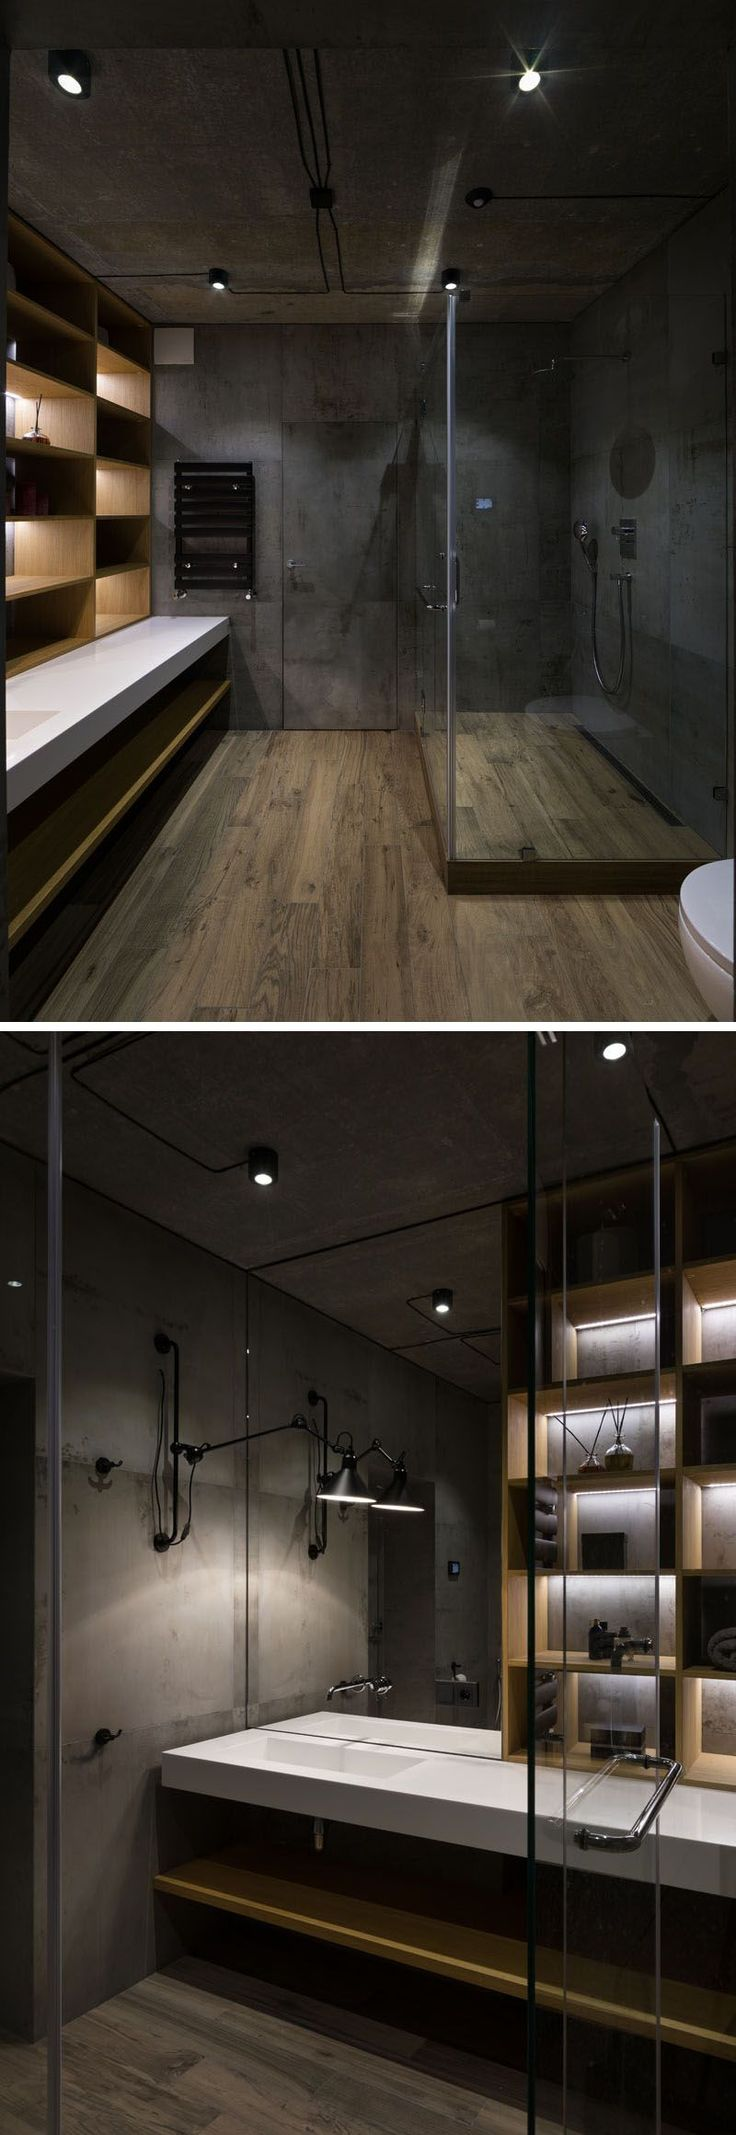 Wood flooring and concrete walls add an industrial touch to this bathroom, while the glass shower surround allows light to pass through. A section of the wall is made up of wood shelves with hidden lighting.